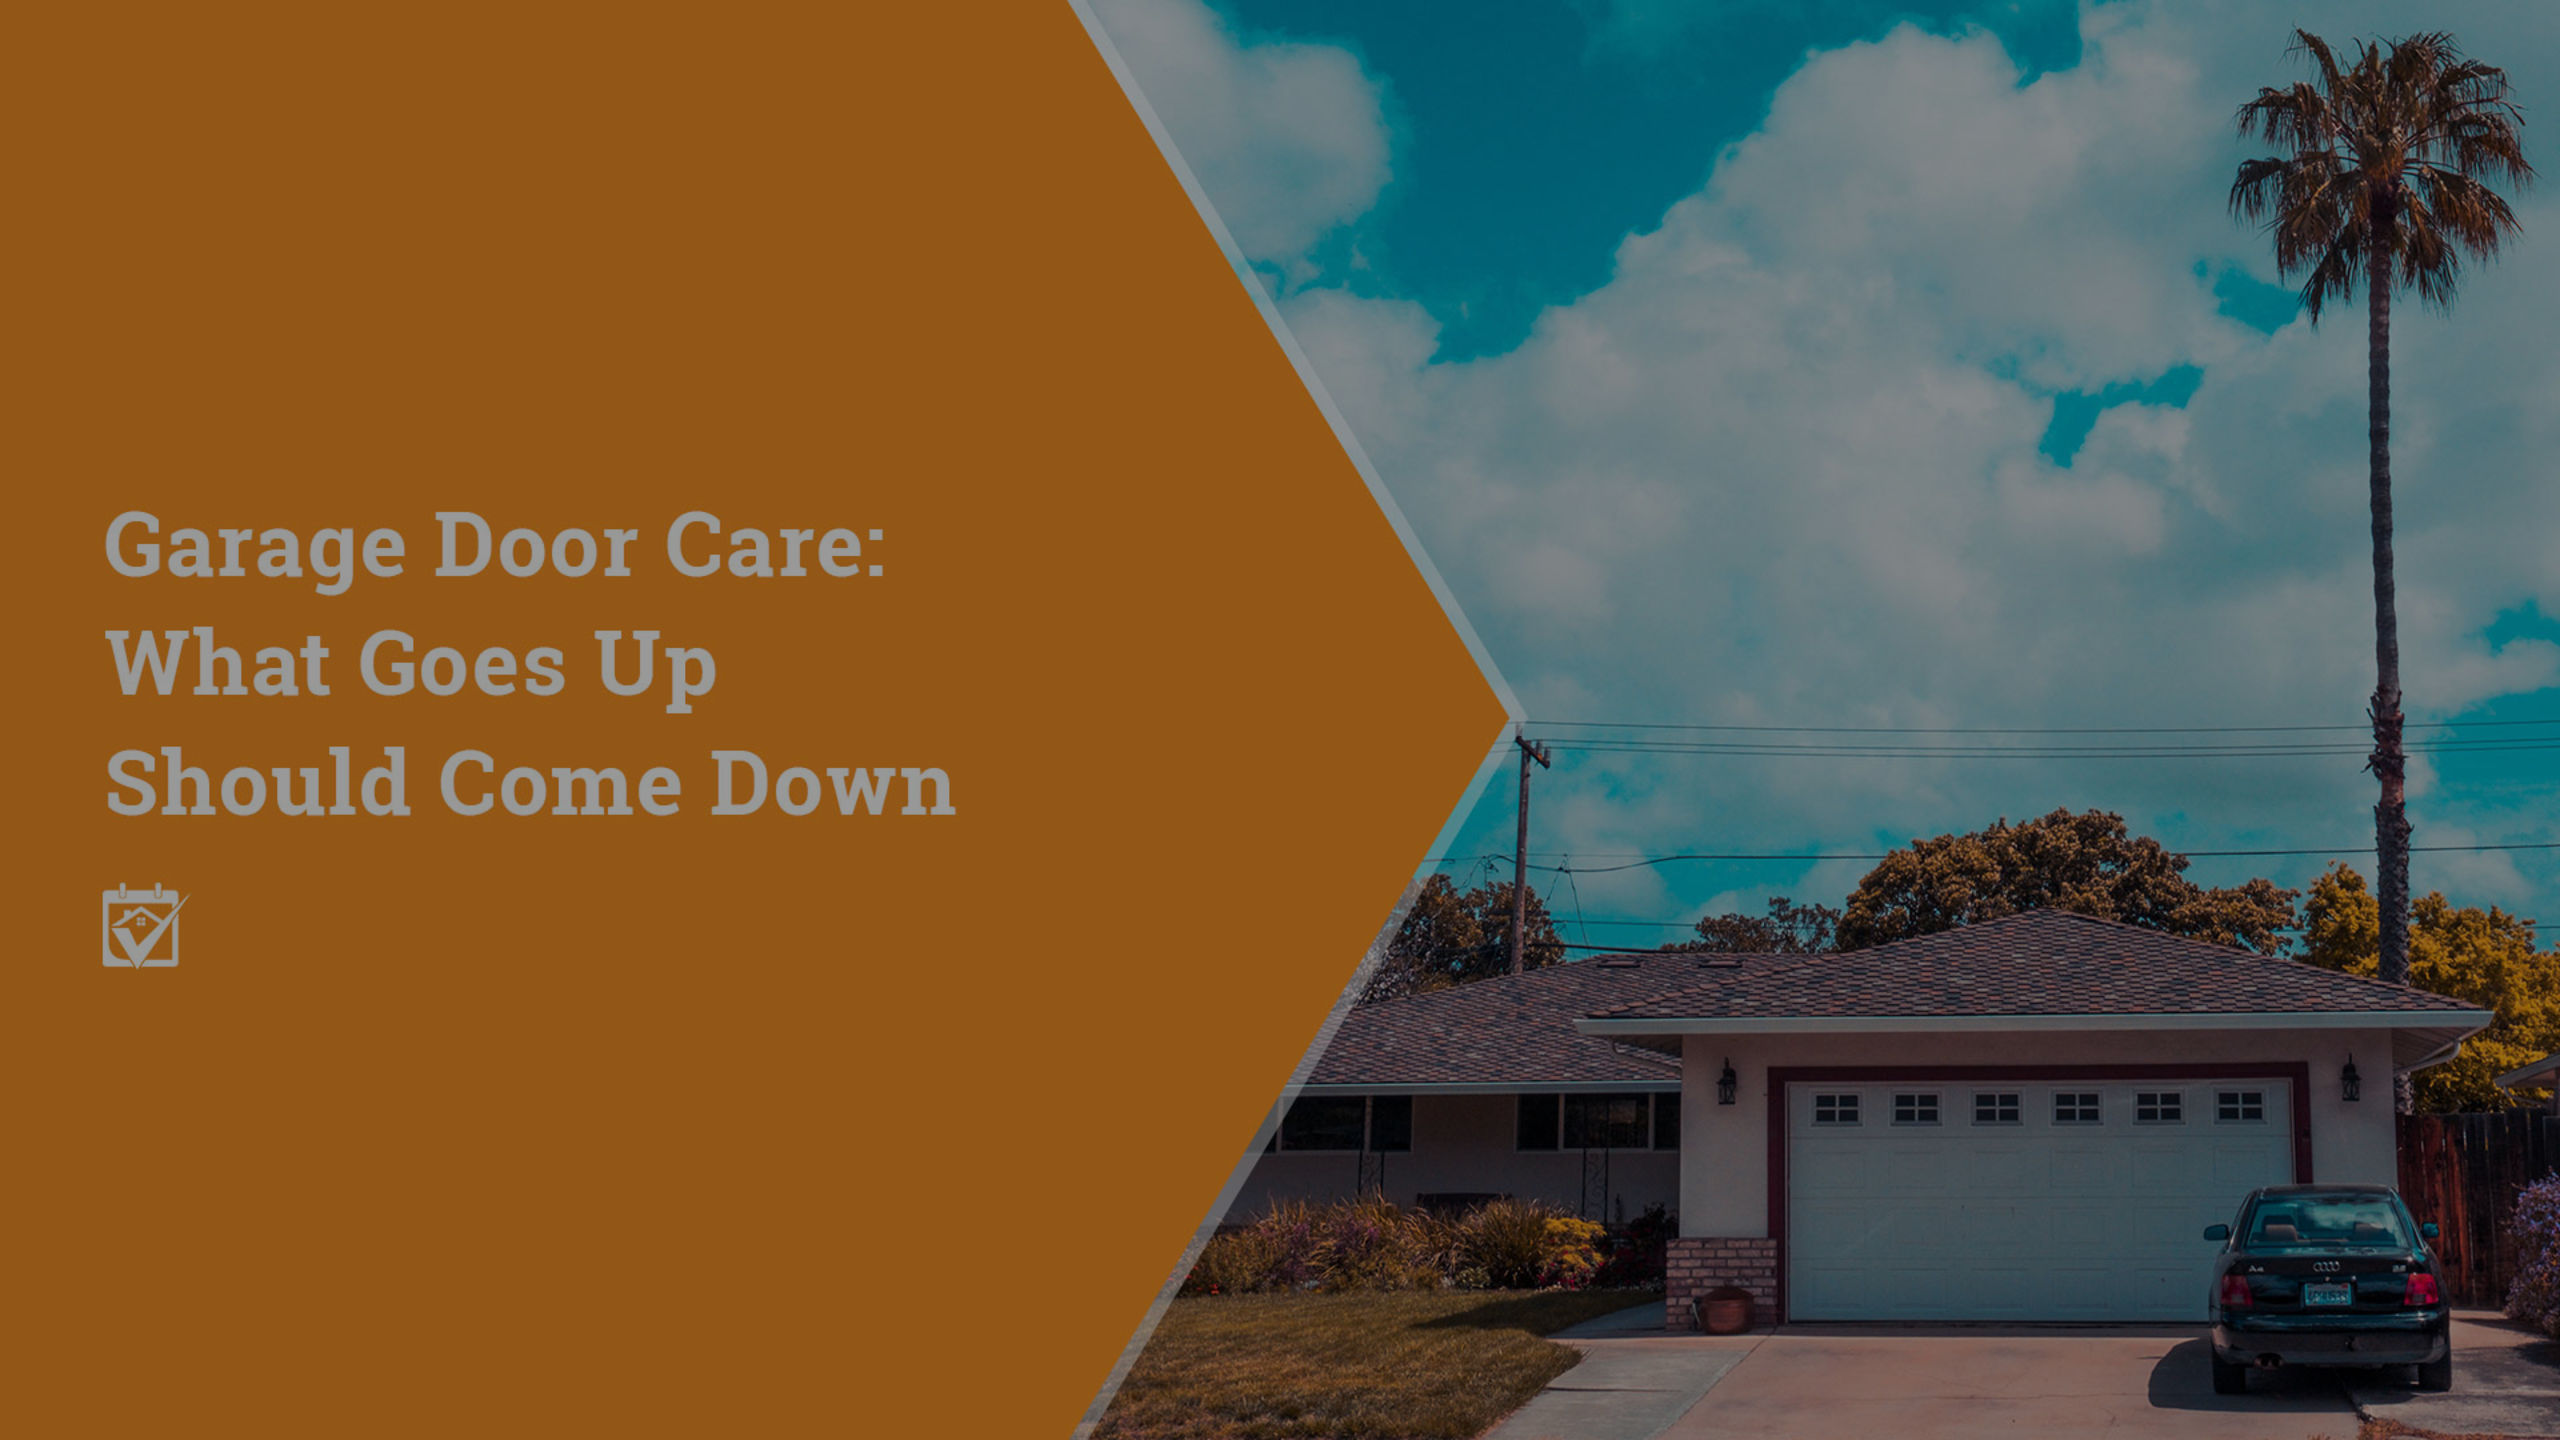 Garage Door Care: What Goes Up Should Come Down